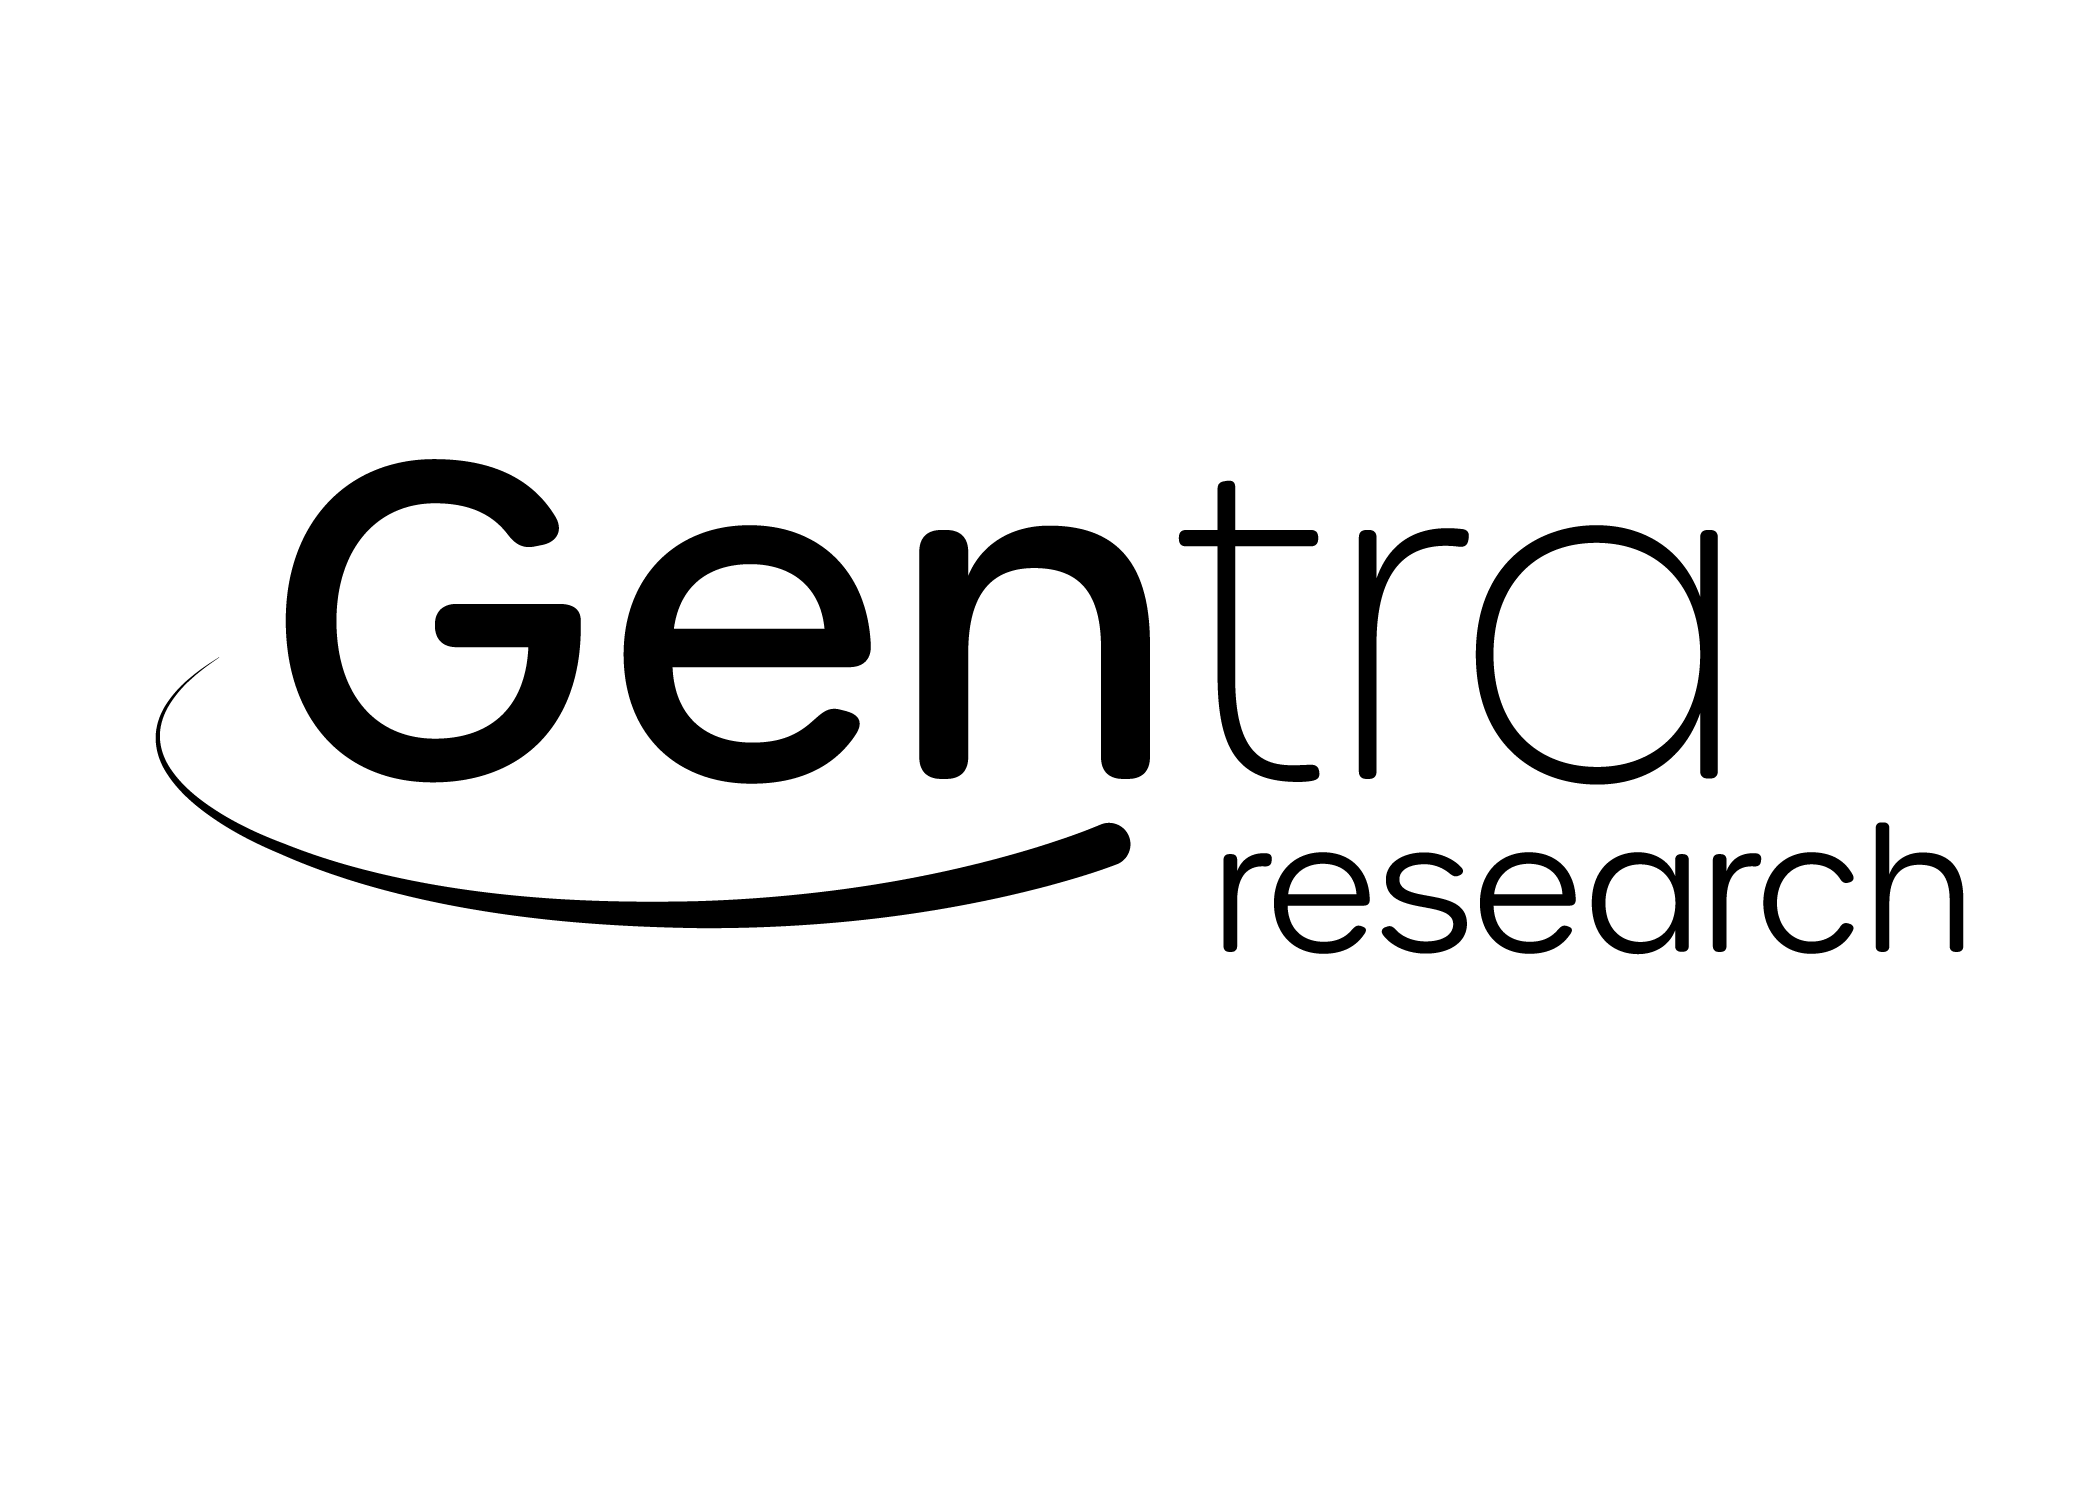 GENTRA_LOGO_RESEARCH_BLACK.png